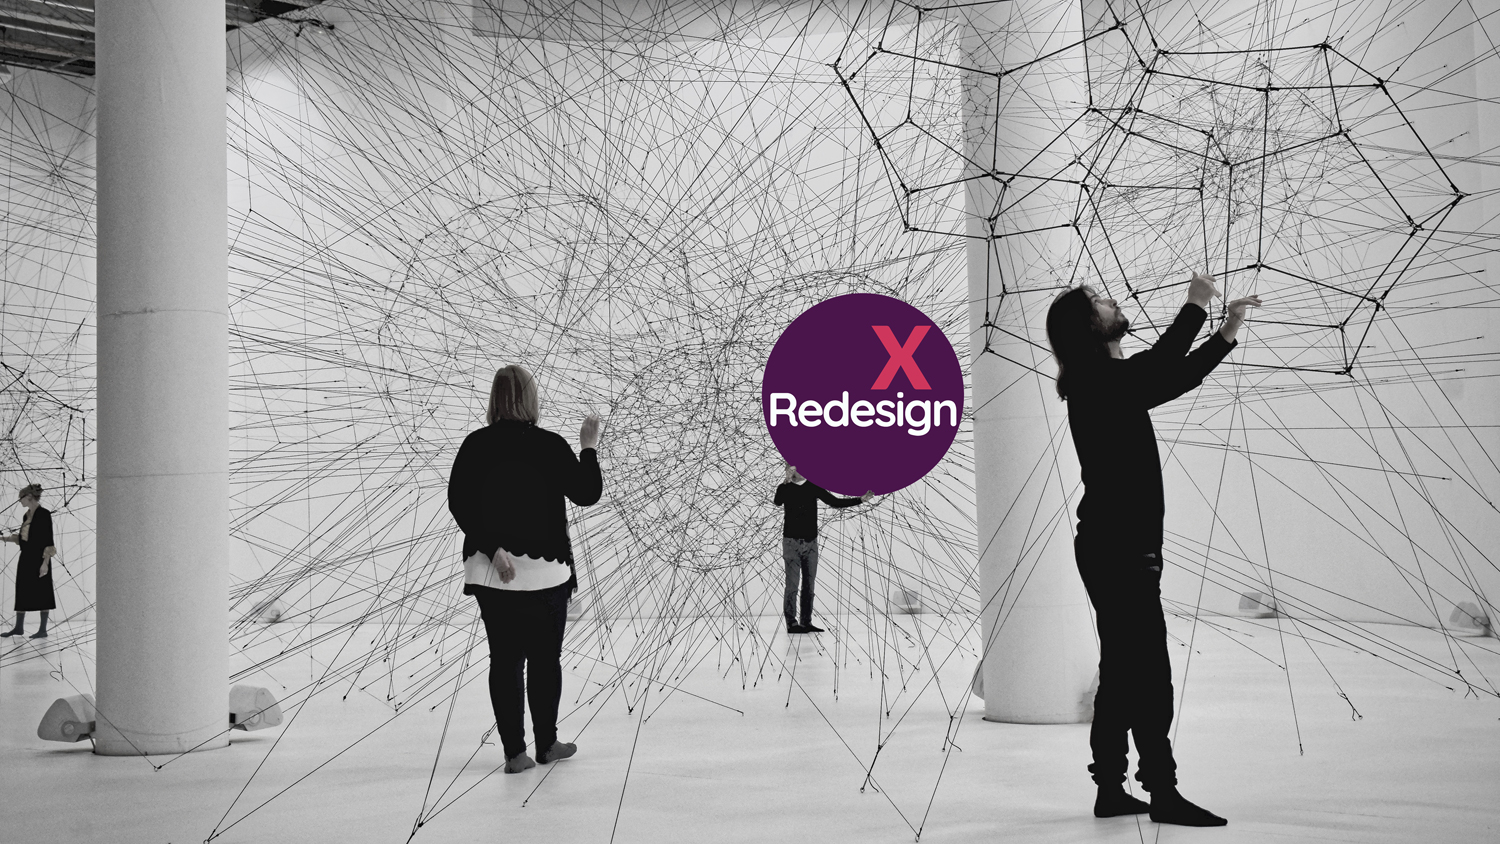 Introducing RedesignX. Peter Oliver talks about why, and what we aim to help achieve.